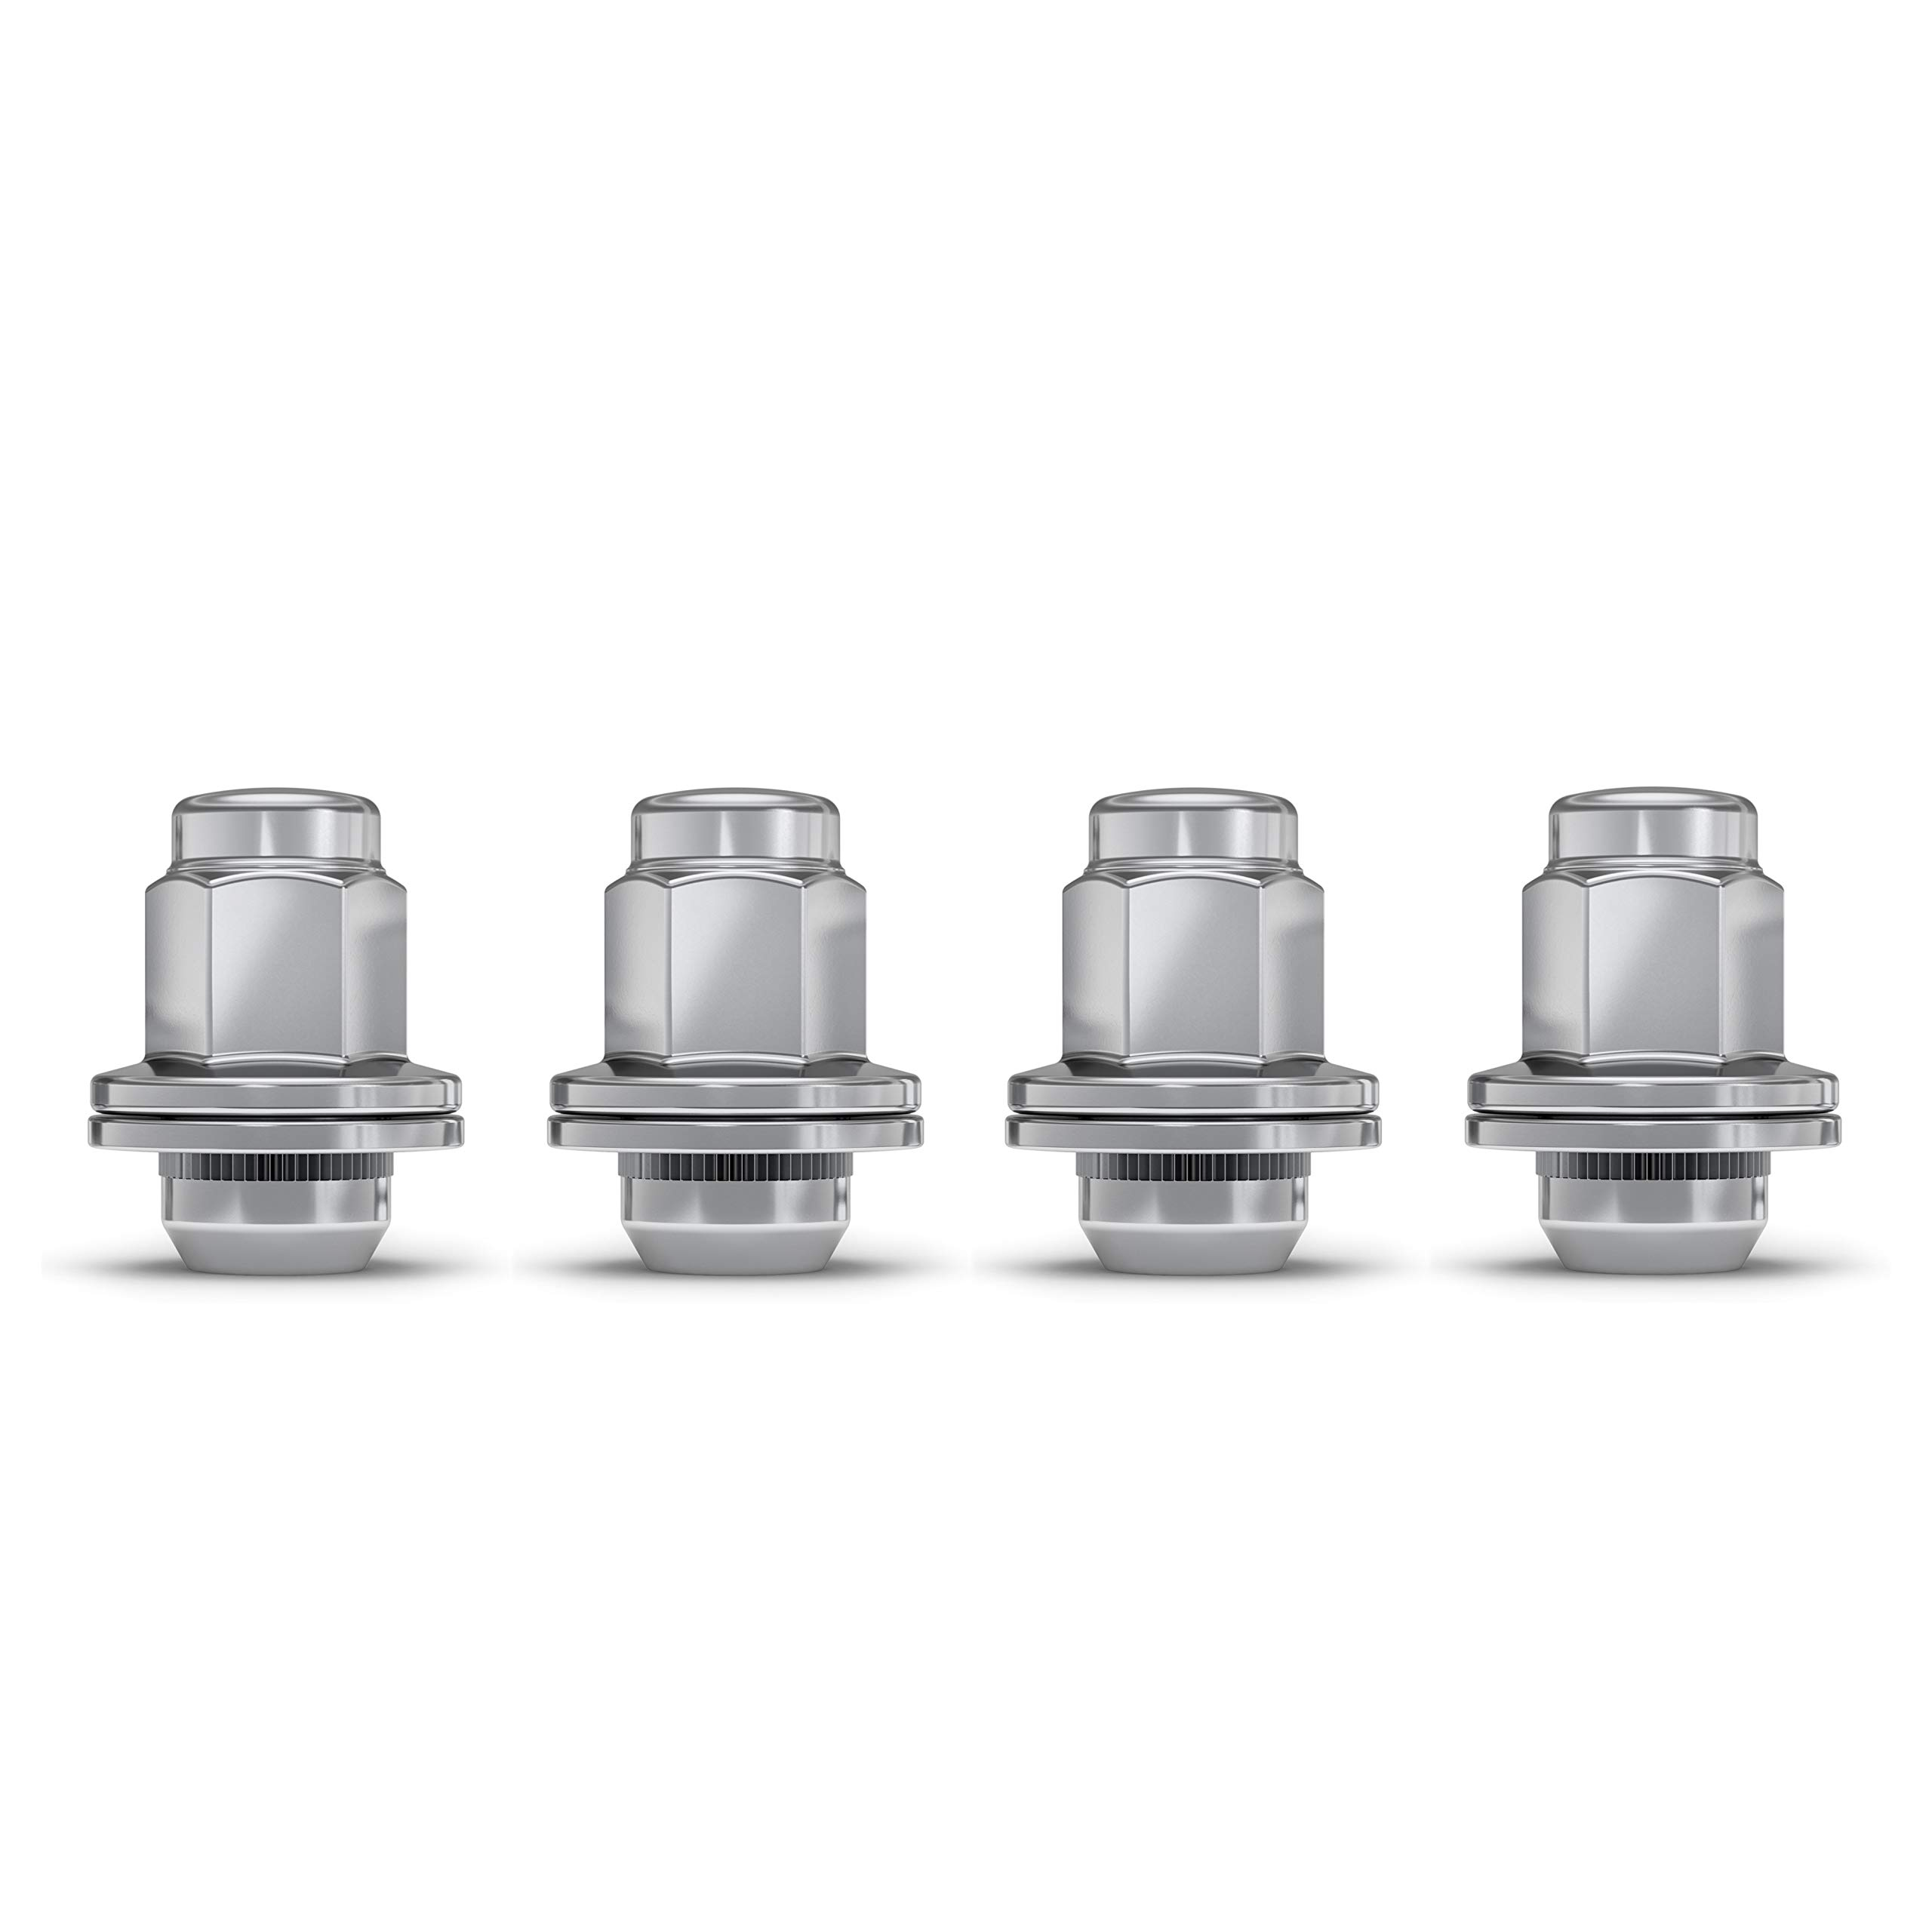 Lug Nuts Landcruiser Tundra OEM Mag 14x1.5 Thread Set of 20 Pcs ezaccessory